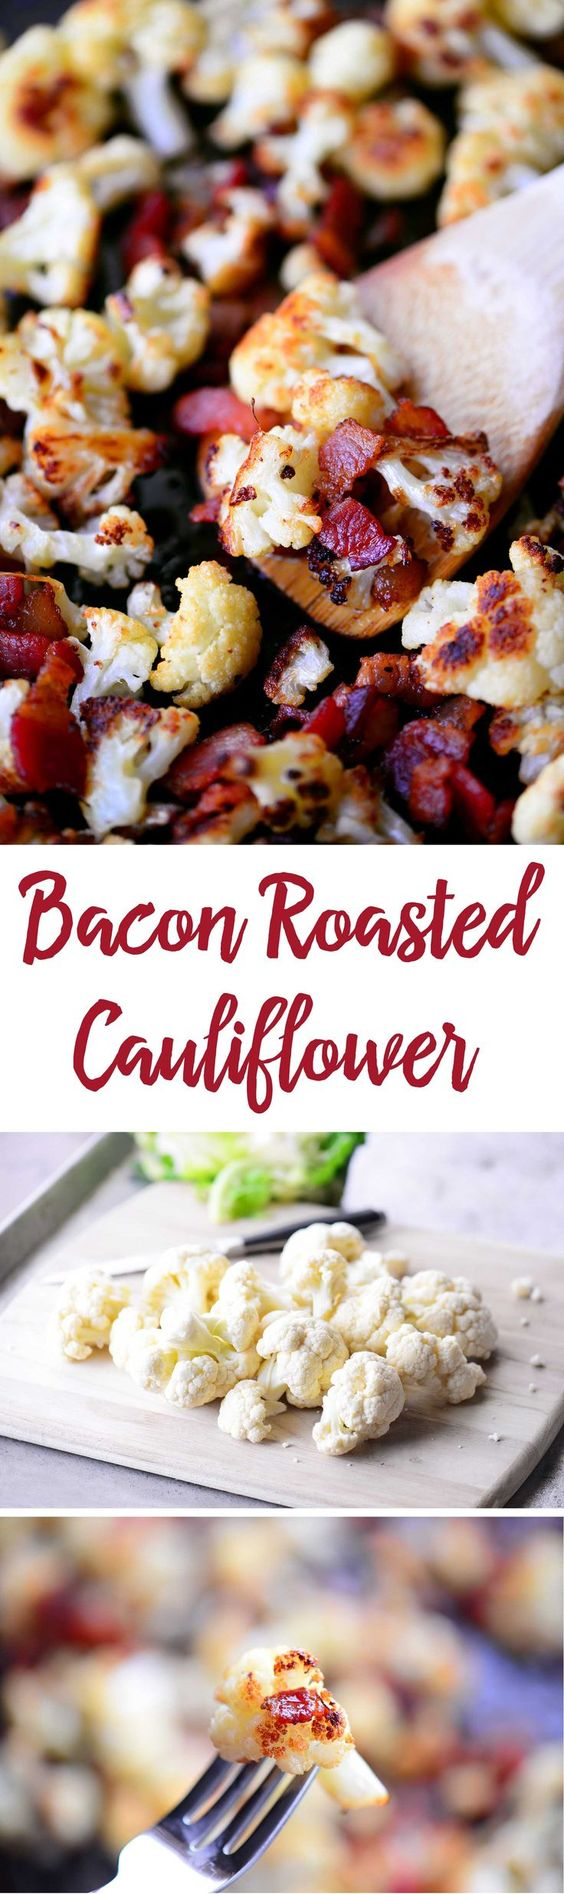 Bacon Roasted Cauliflower Vegetable Side Dish Recipe via The Gunny Sack - This Bacon Roasted Cauliflower recipe can be enjoyed as a snack or side dish. It's a great appetizer and works for a low carb, high protein or Paleo diet.